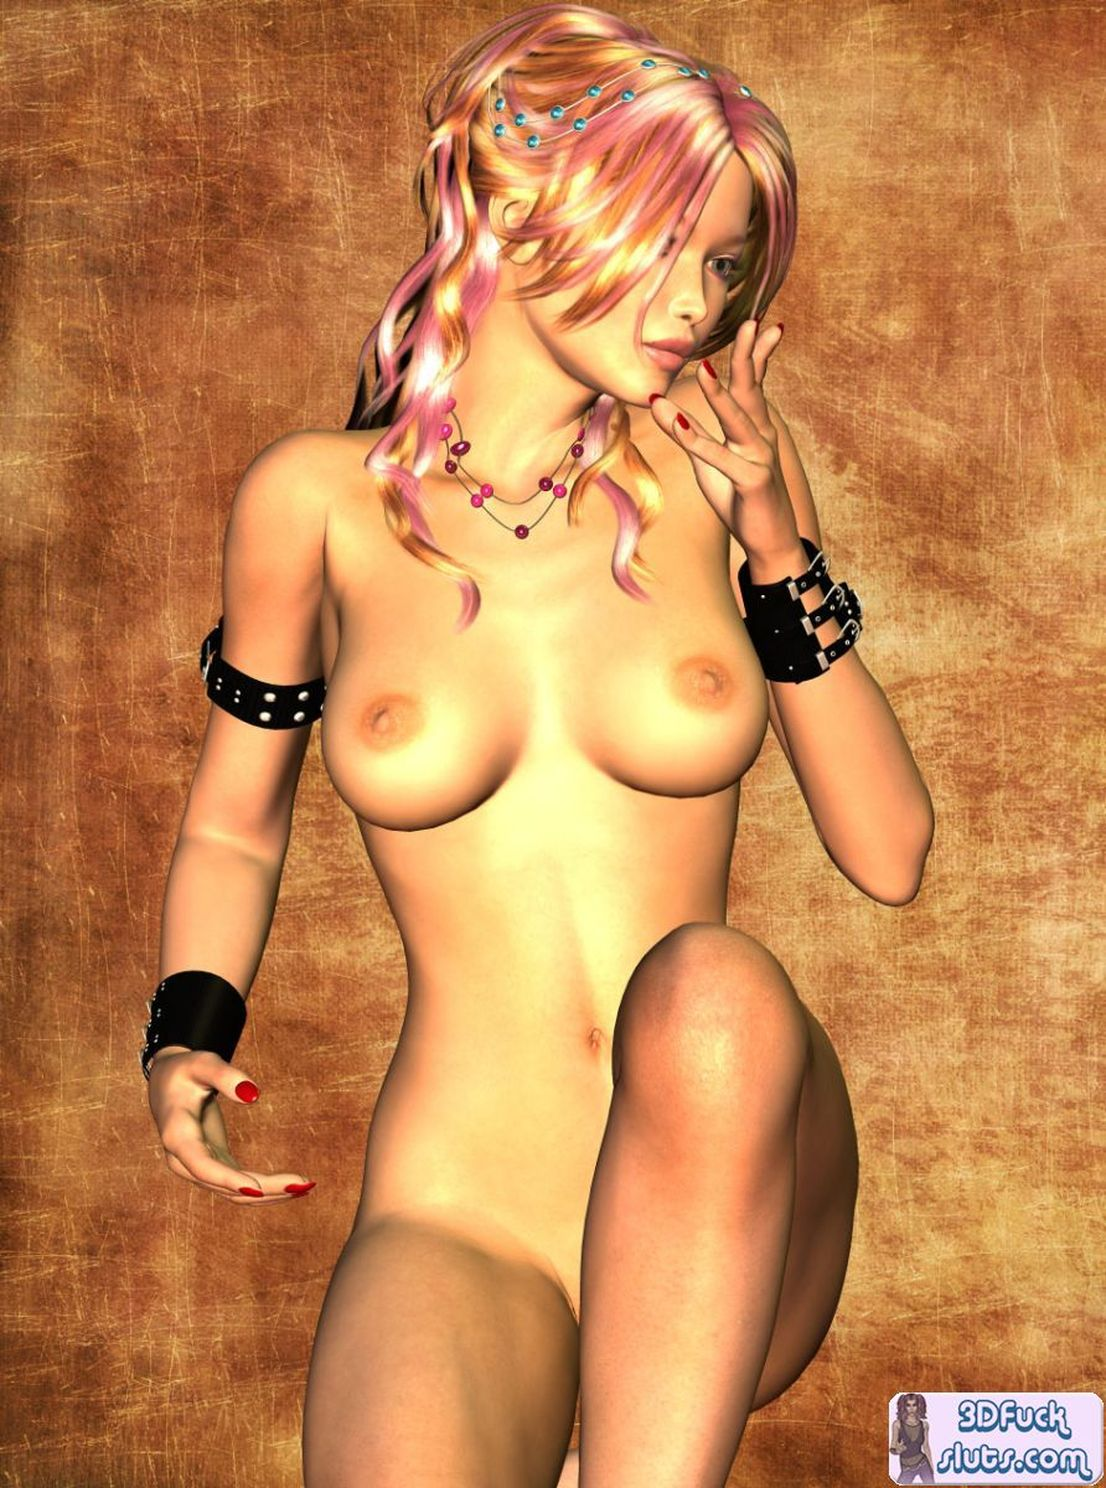 Nude toon girls picture xxx photos